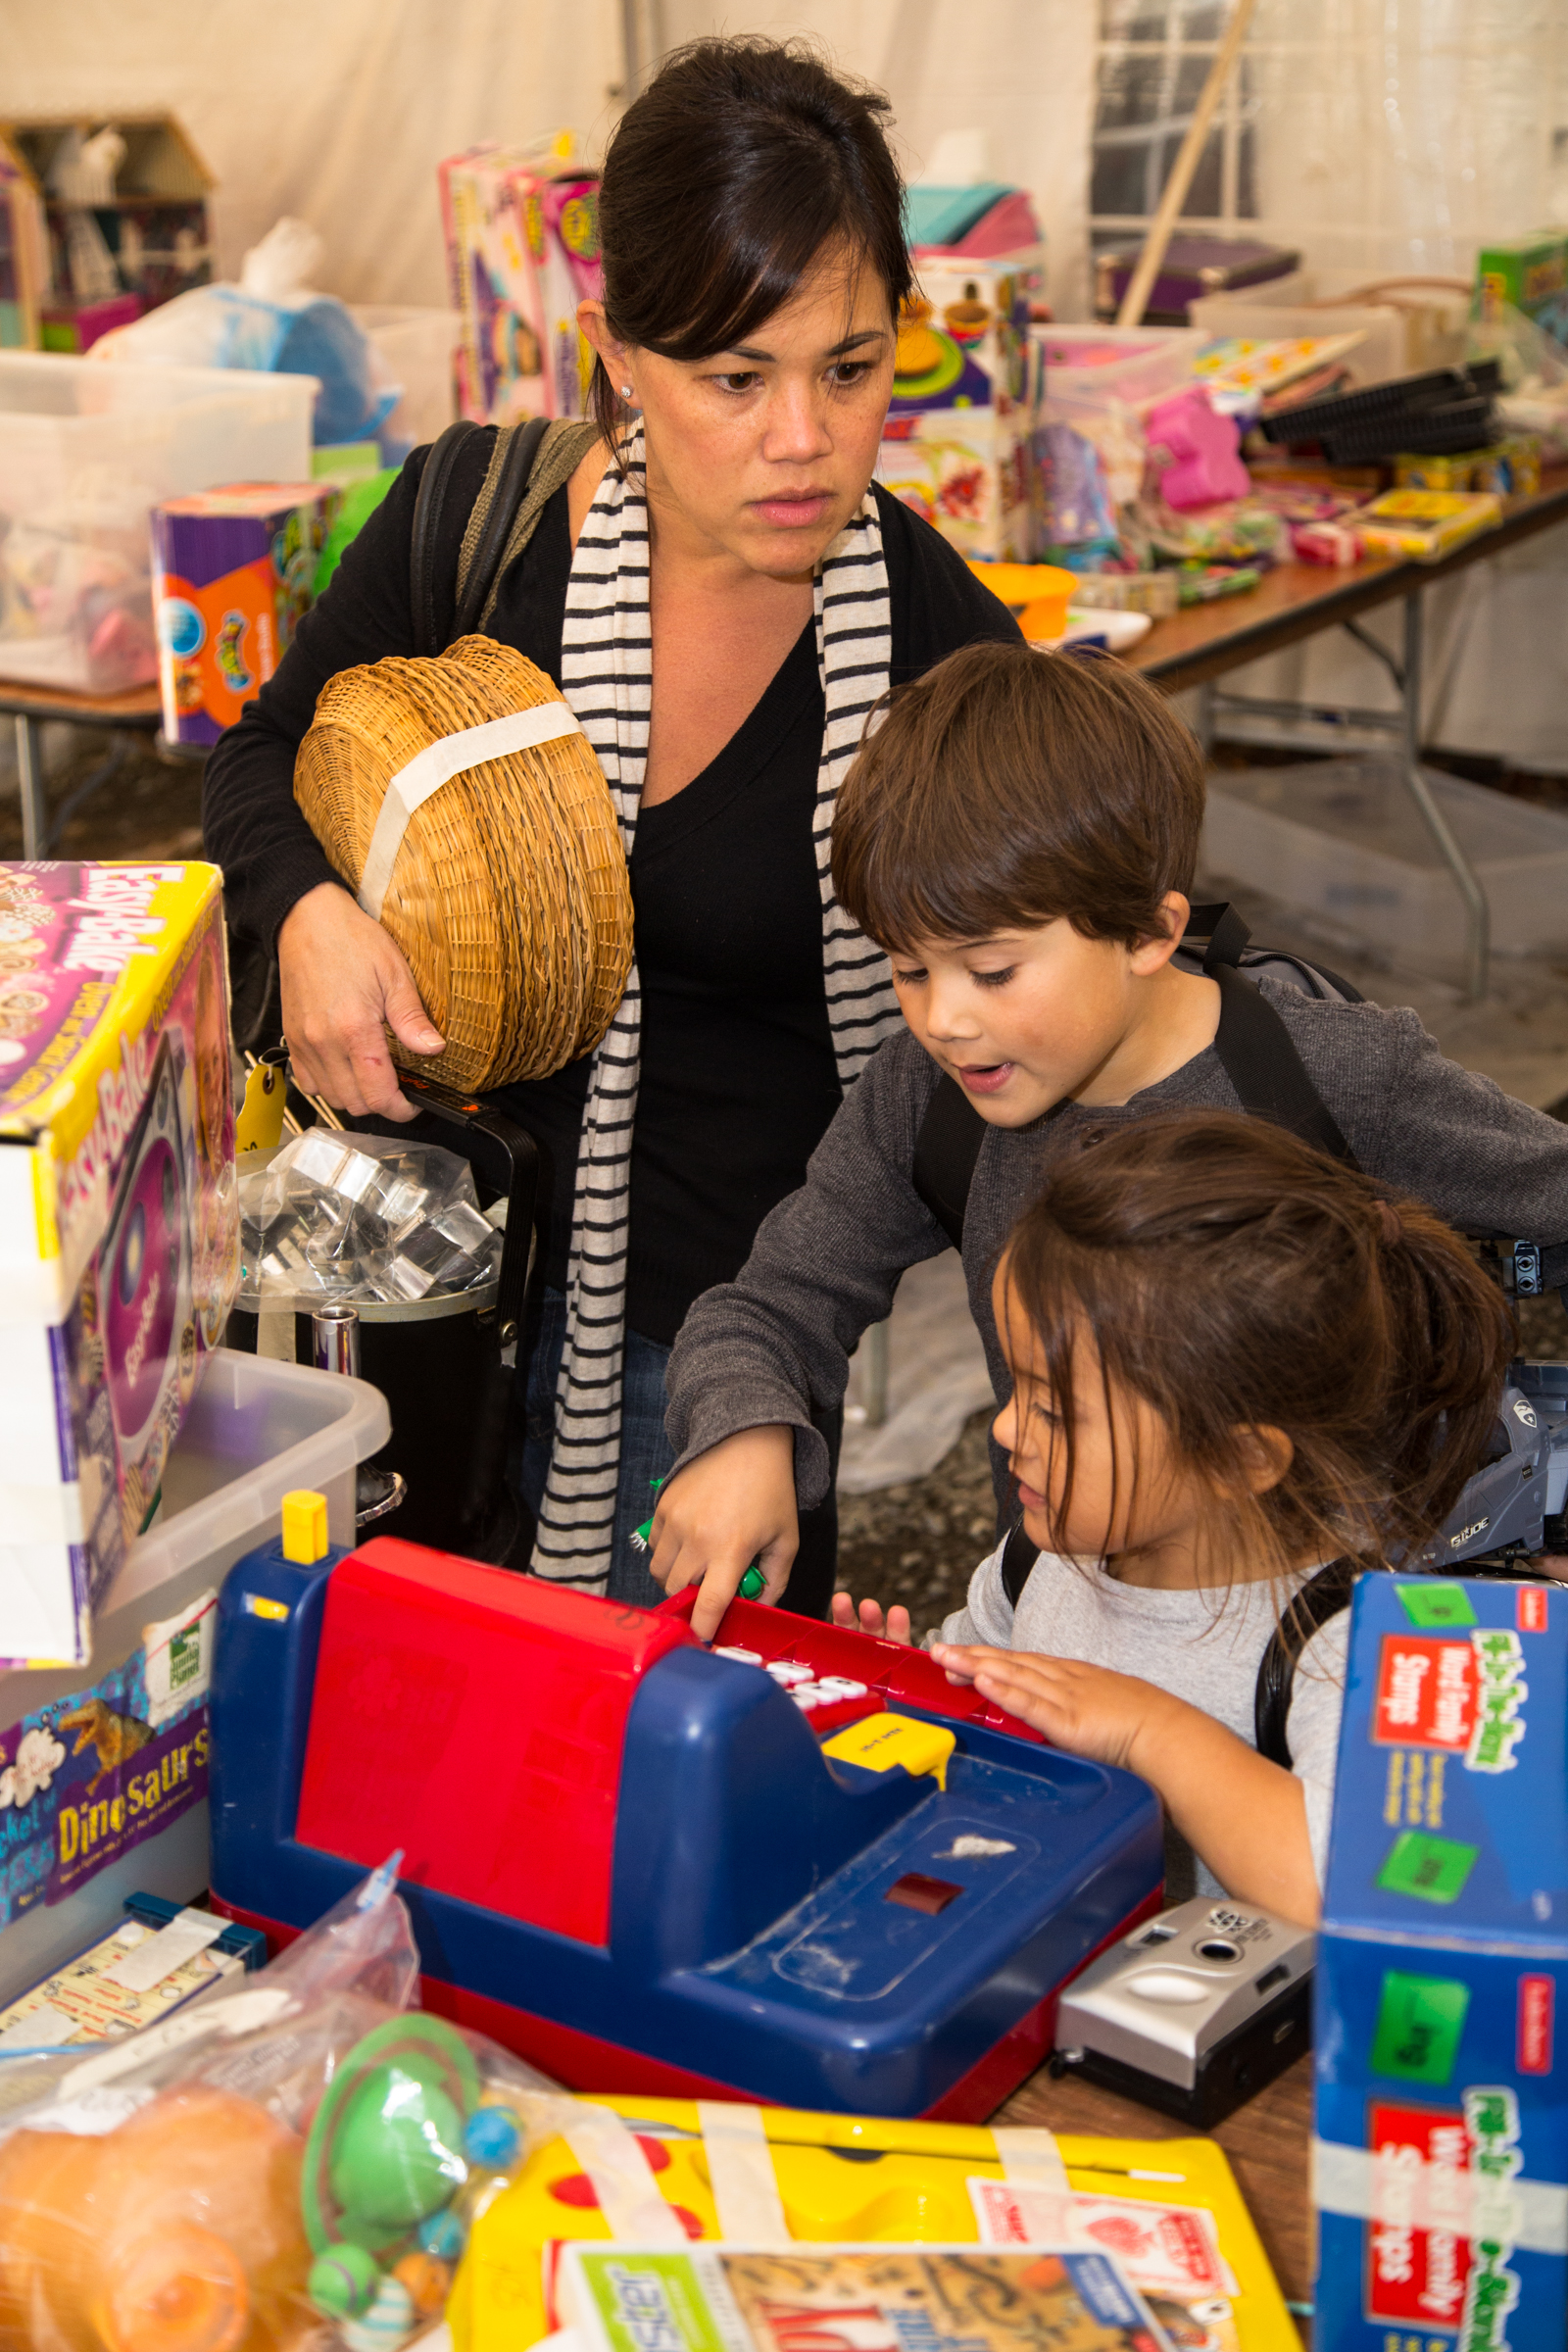 A frustrated mother shops with energetic children at an annual charity event.